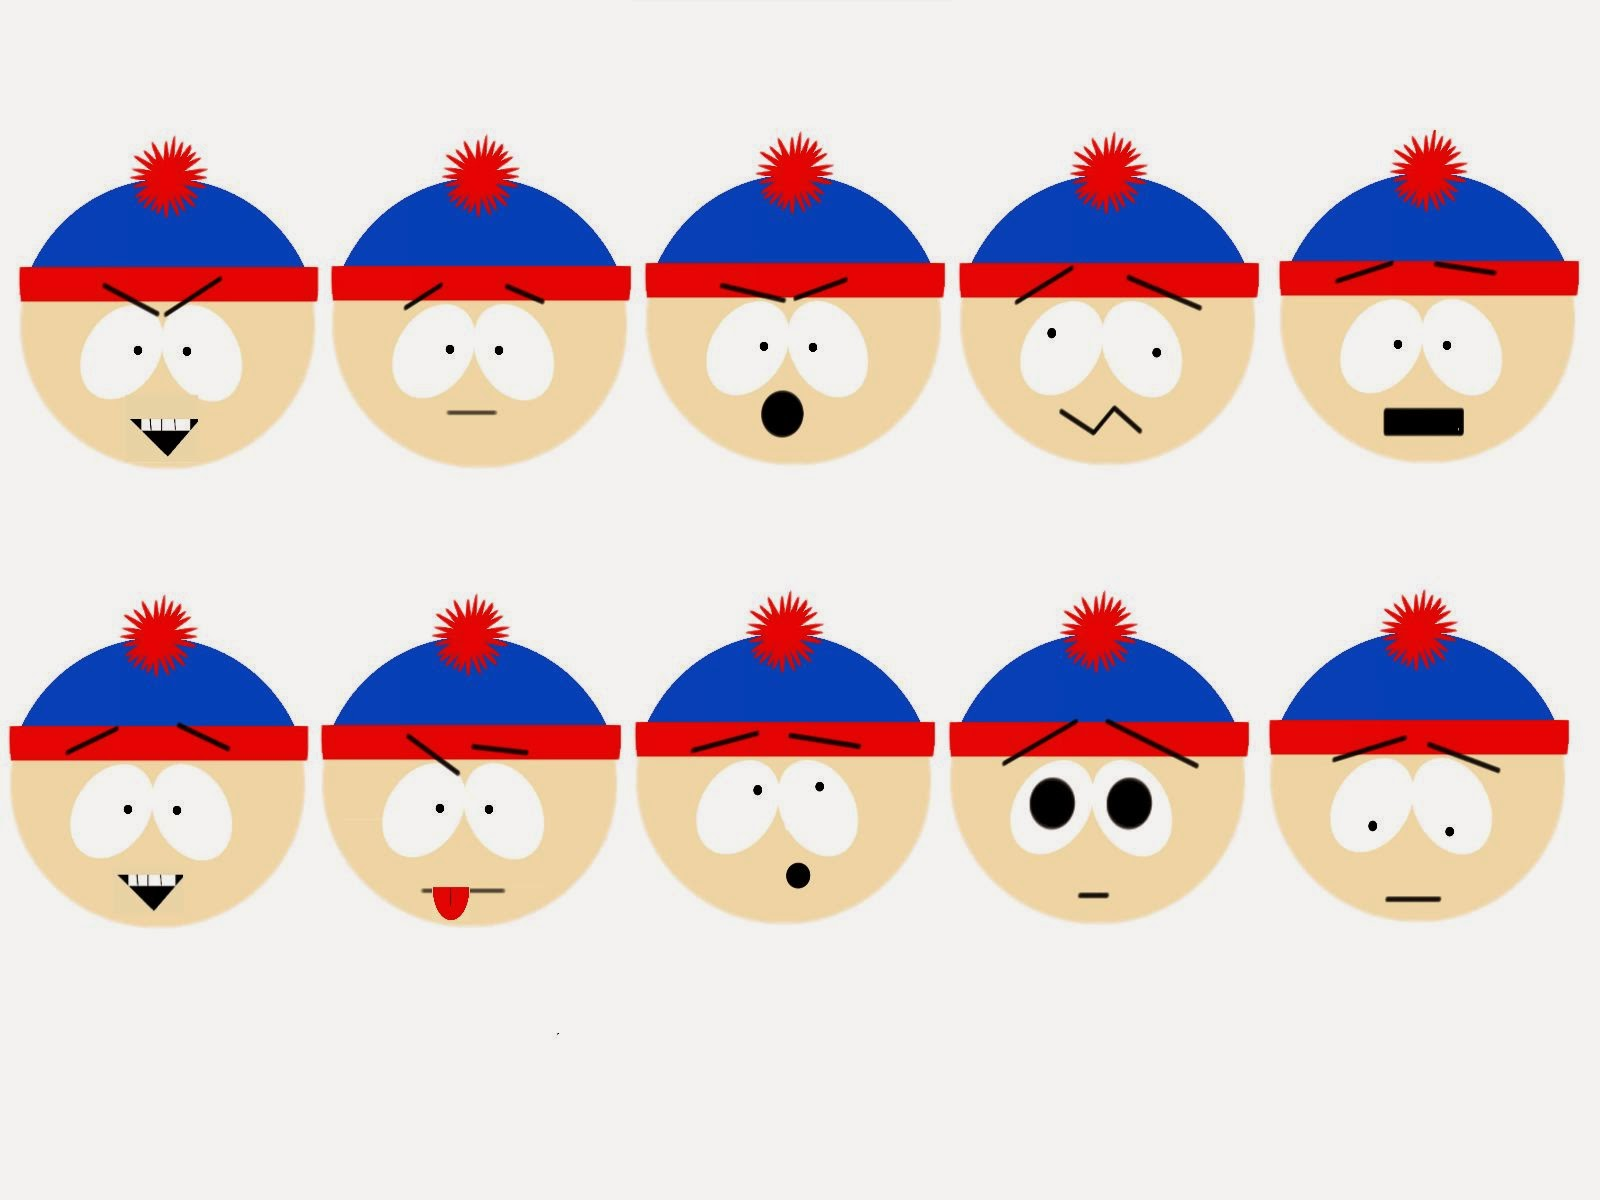 In This Project I Used The South Park Character Stan Marsh For My Emotion Board First Expression Top Left Hand Corner Is Expressing Evil